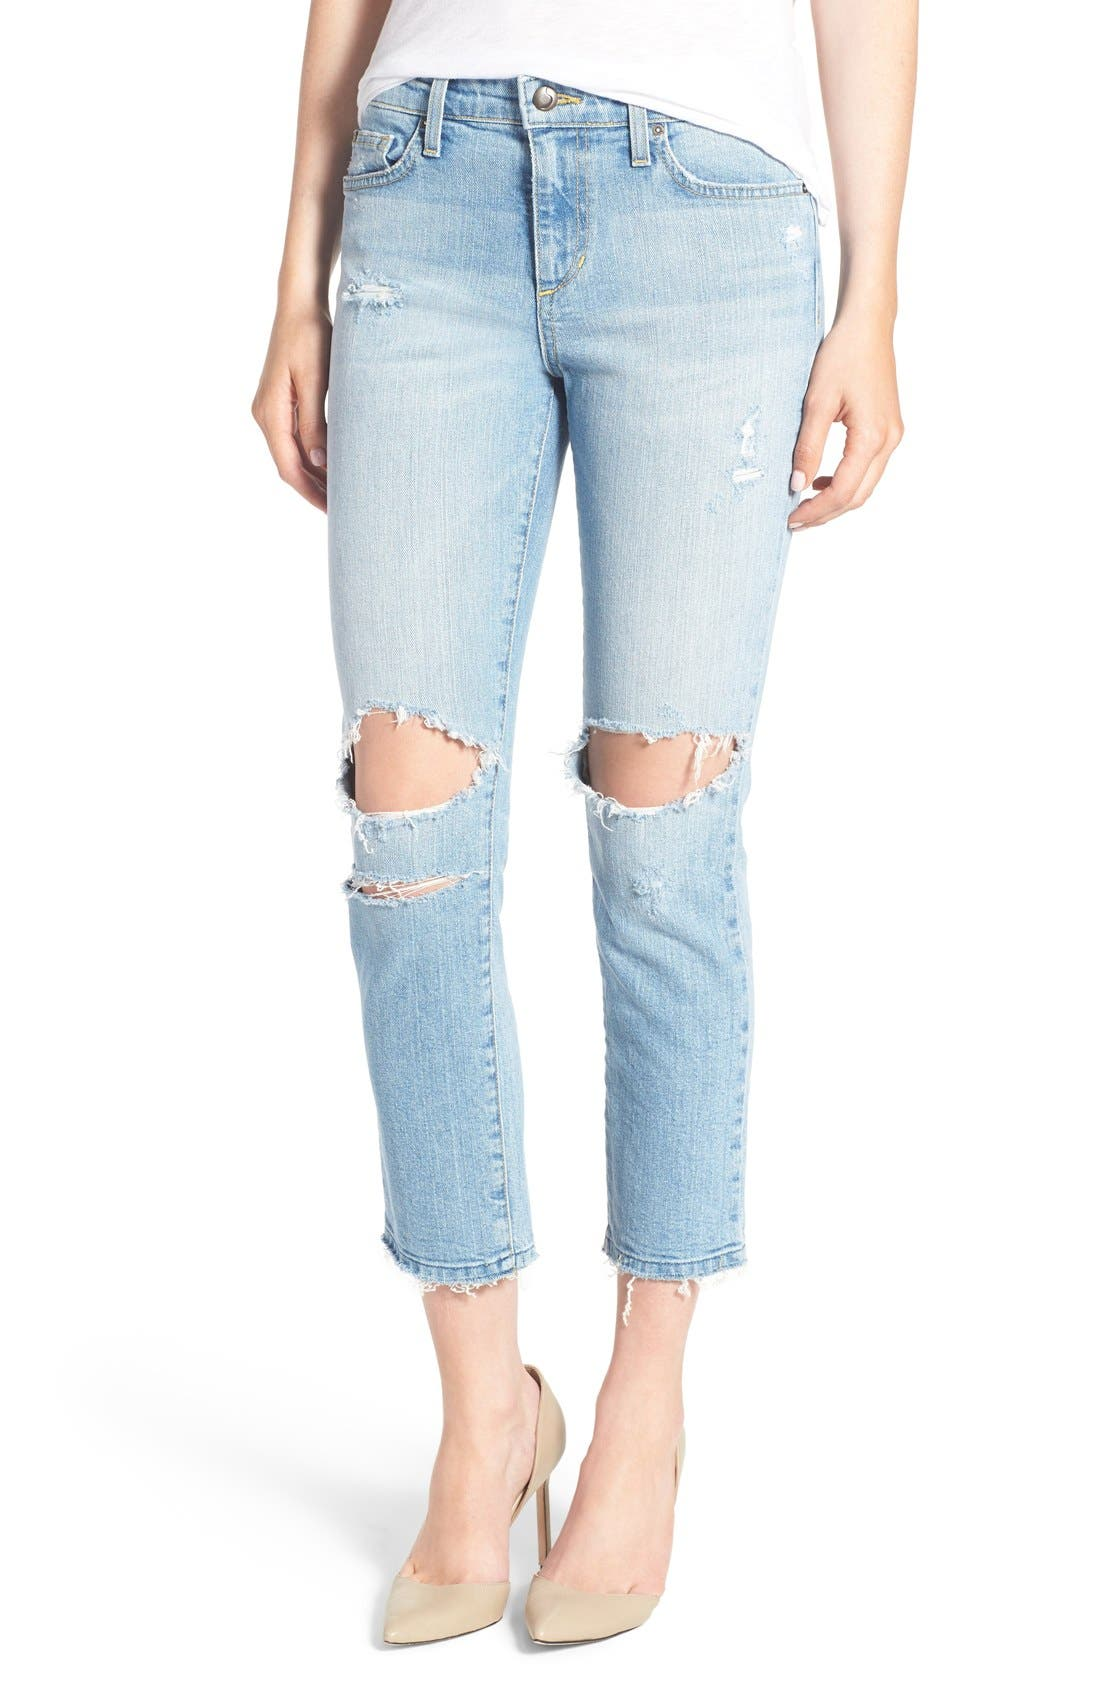 JOE'S 'Ex-Lover' Crop Straight Leg Boyfriend Jeans, Main, color, 430